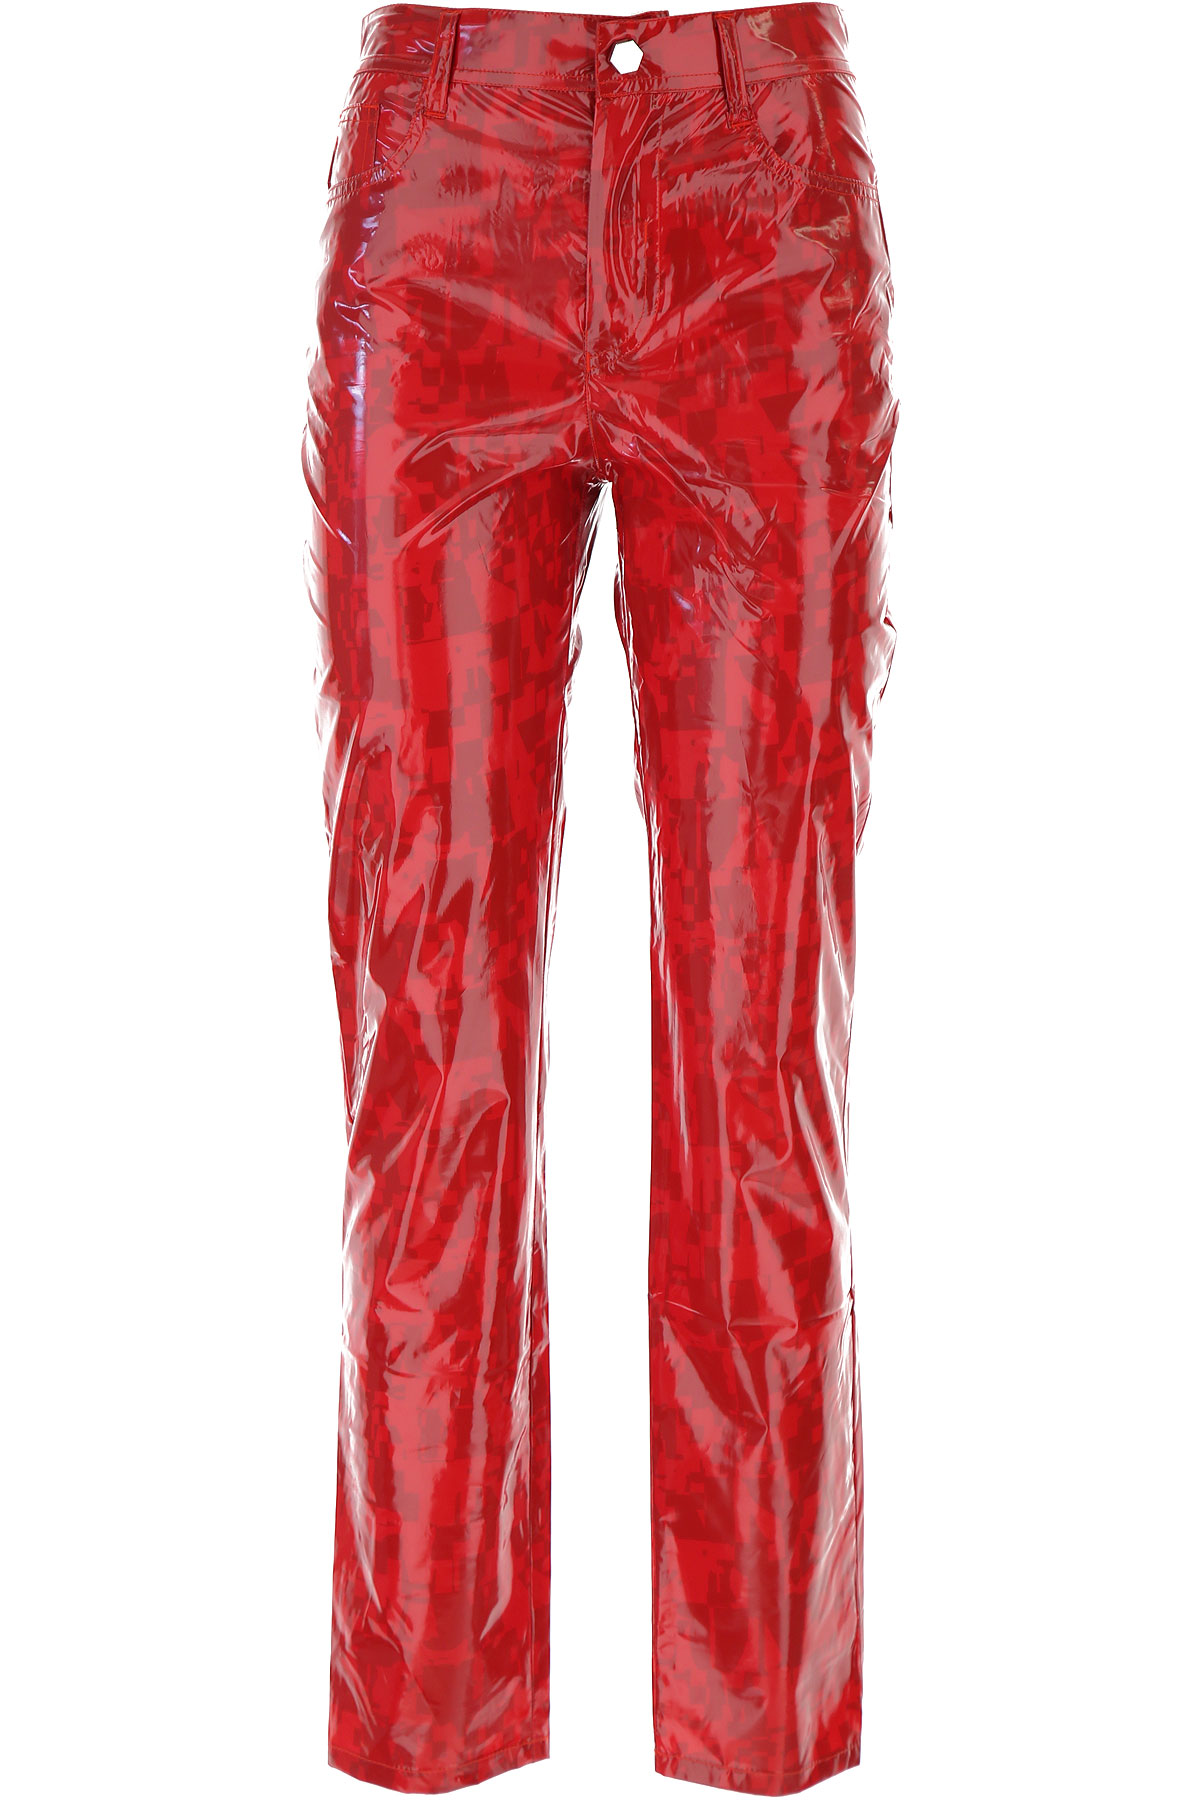 Iceberg Pants for Women On Sale, Cherry Red, polyester, 2019, 26 28